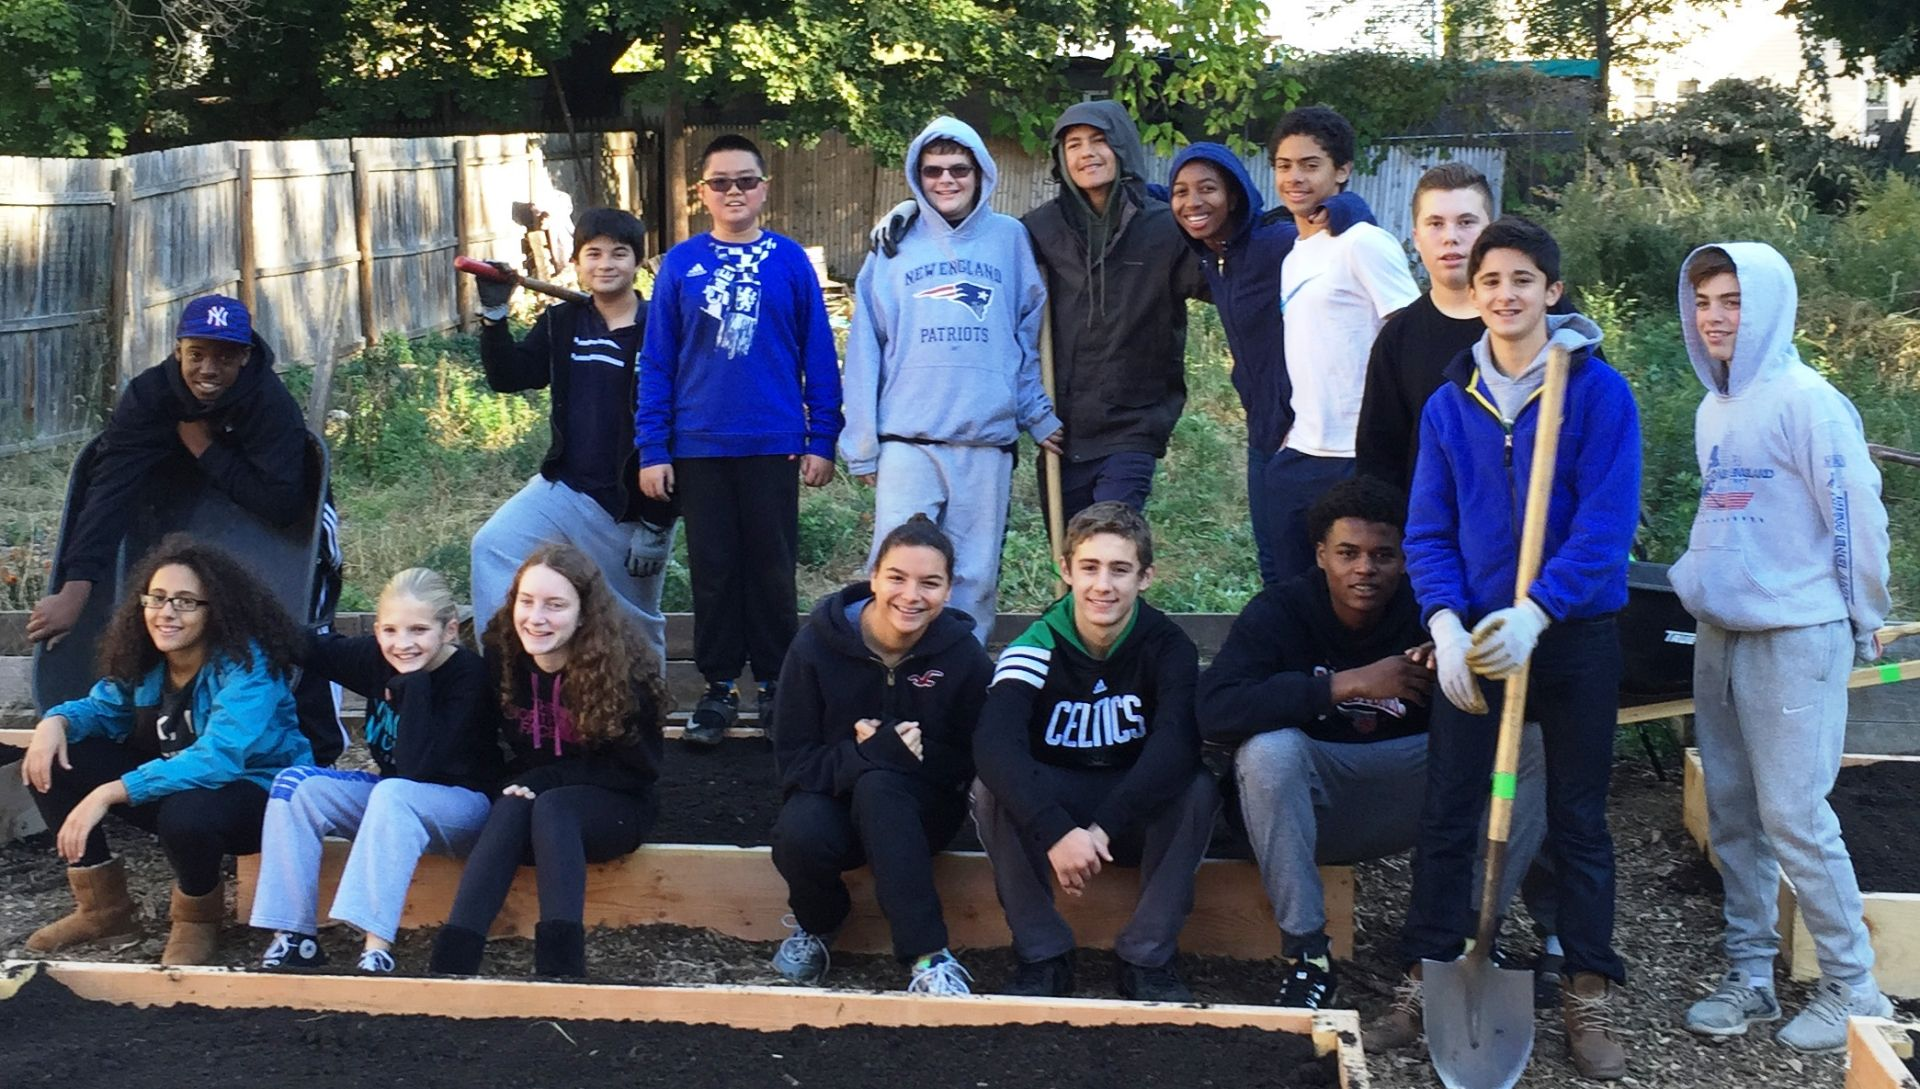 CT by working hands on,High school students give to charity in New Haven